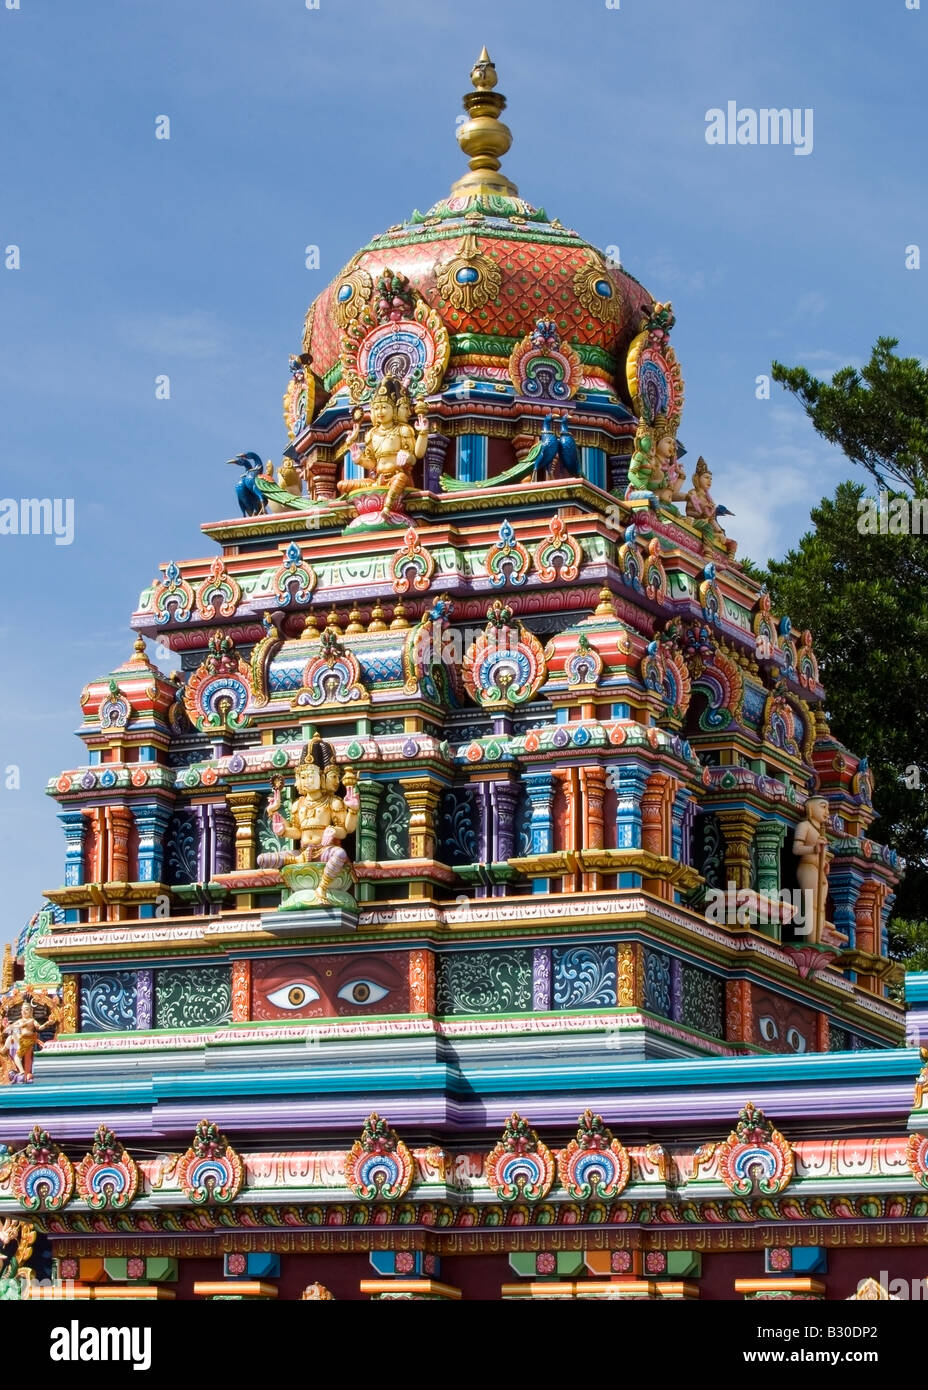 Elaborate pyramid of Sri Siva Subramanya Swamy Temple, Nadi, Fiji - Stock Image